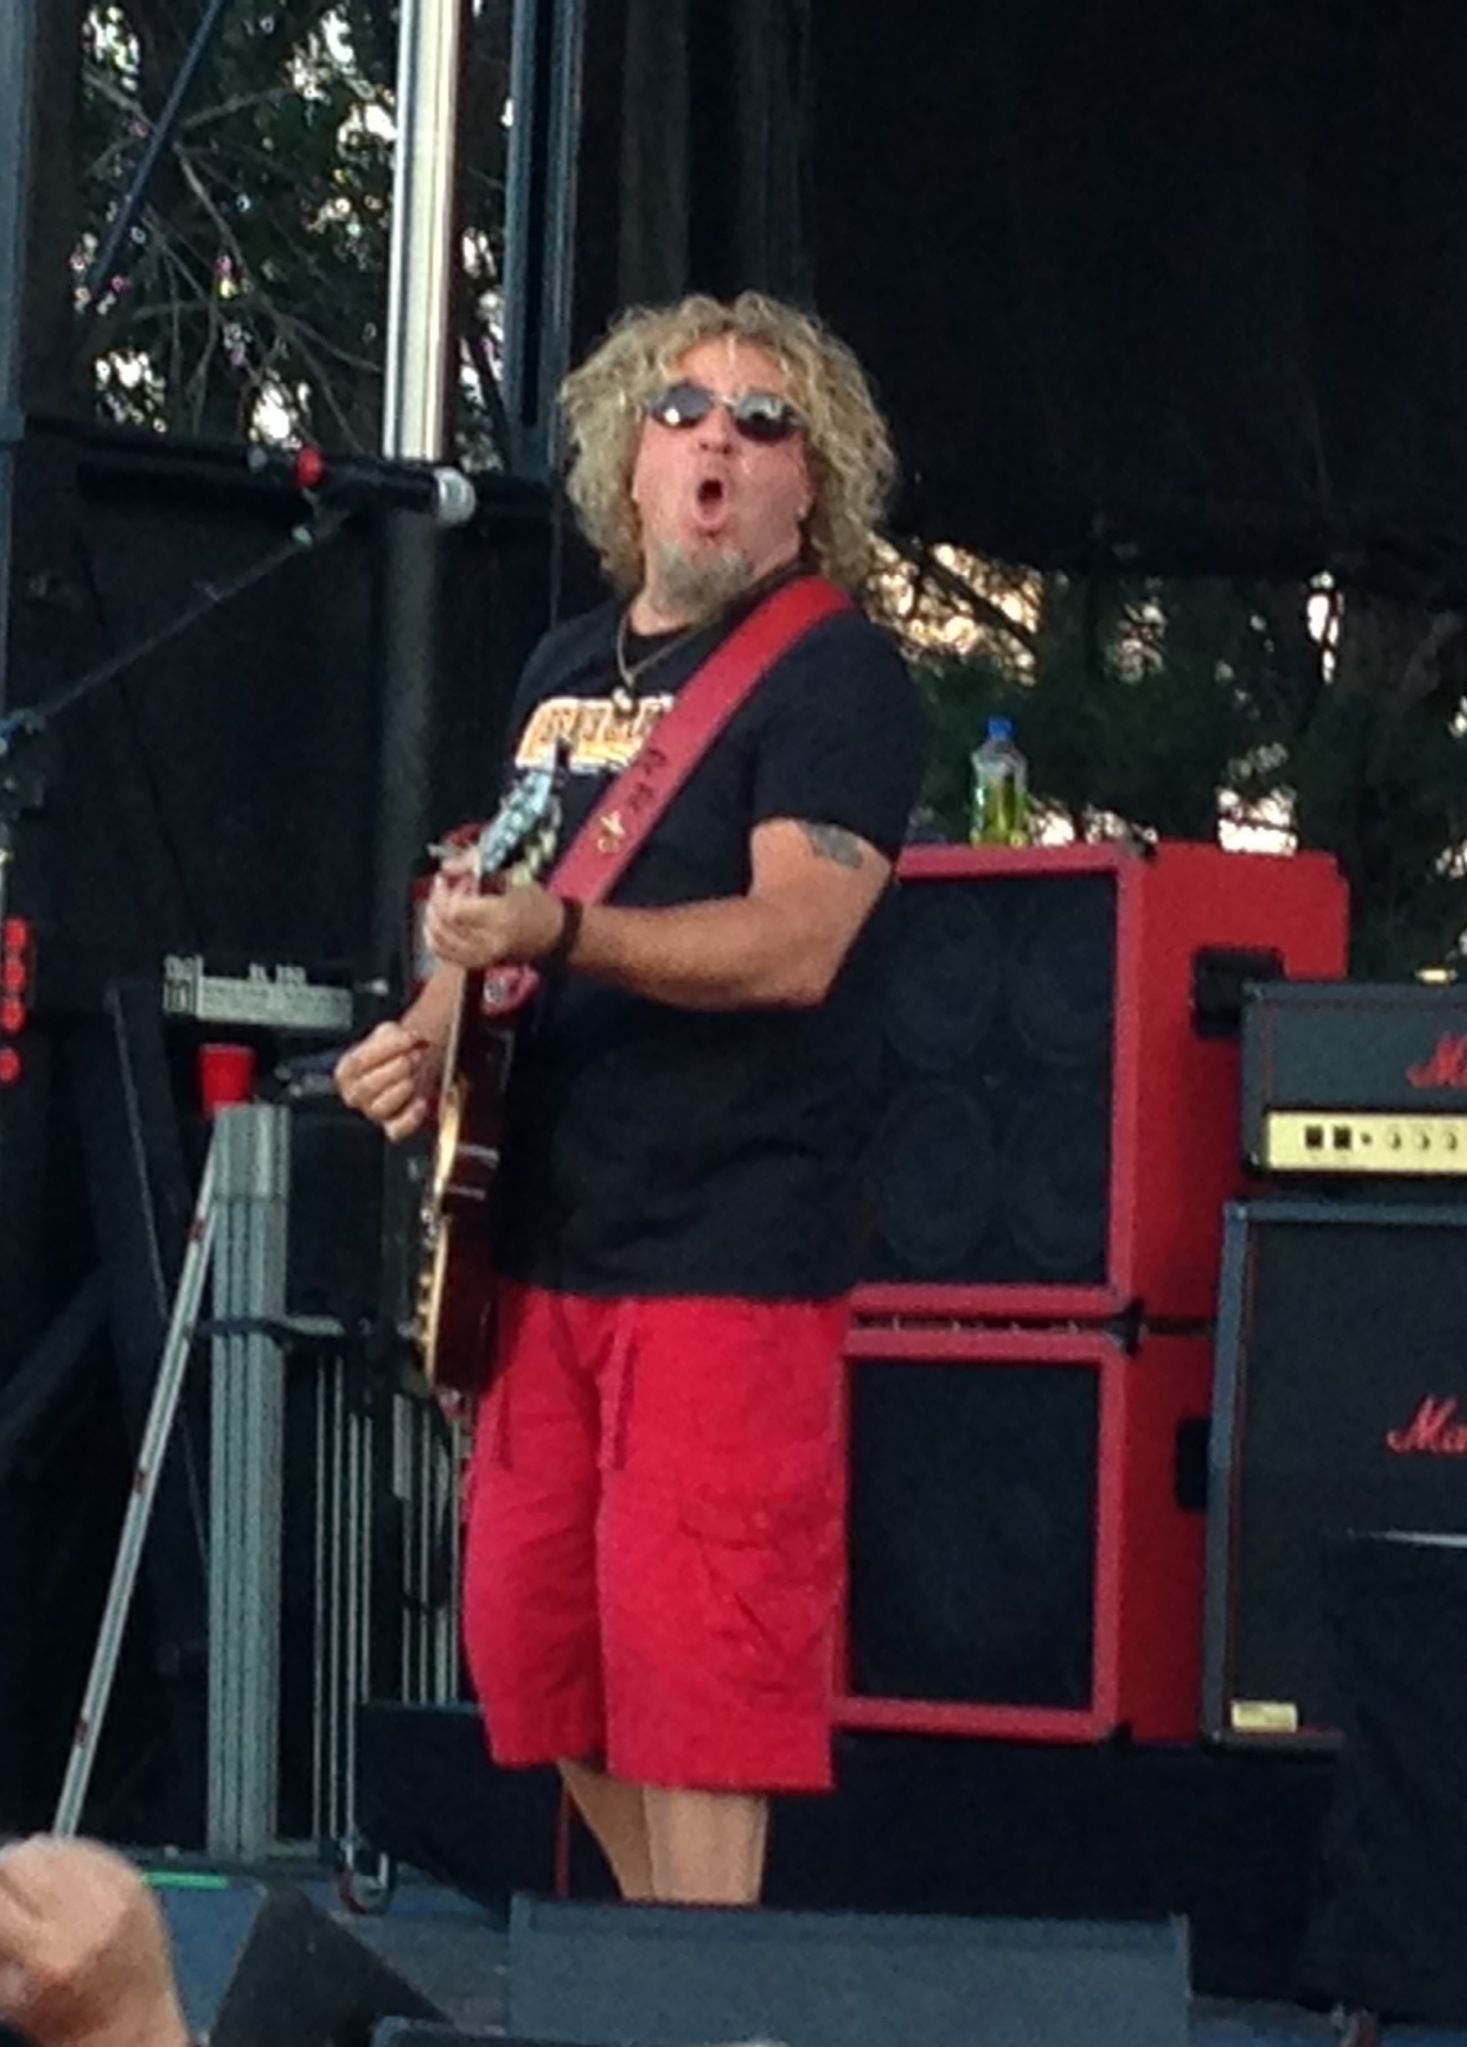 Sammy Hagar The Red Rocker Red Rocker Sammy Hagar Van Halen